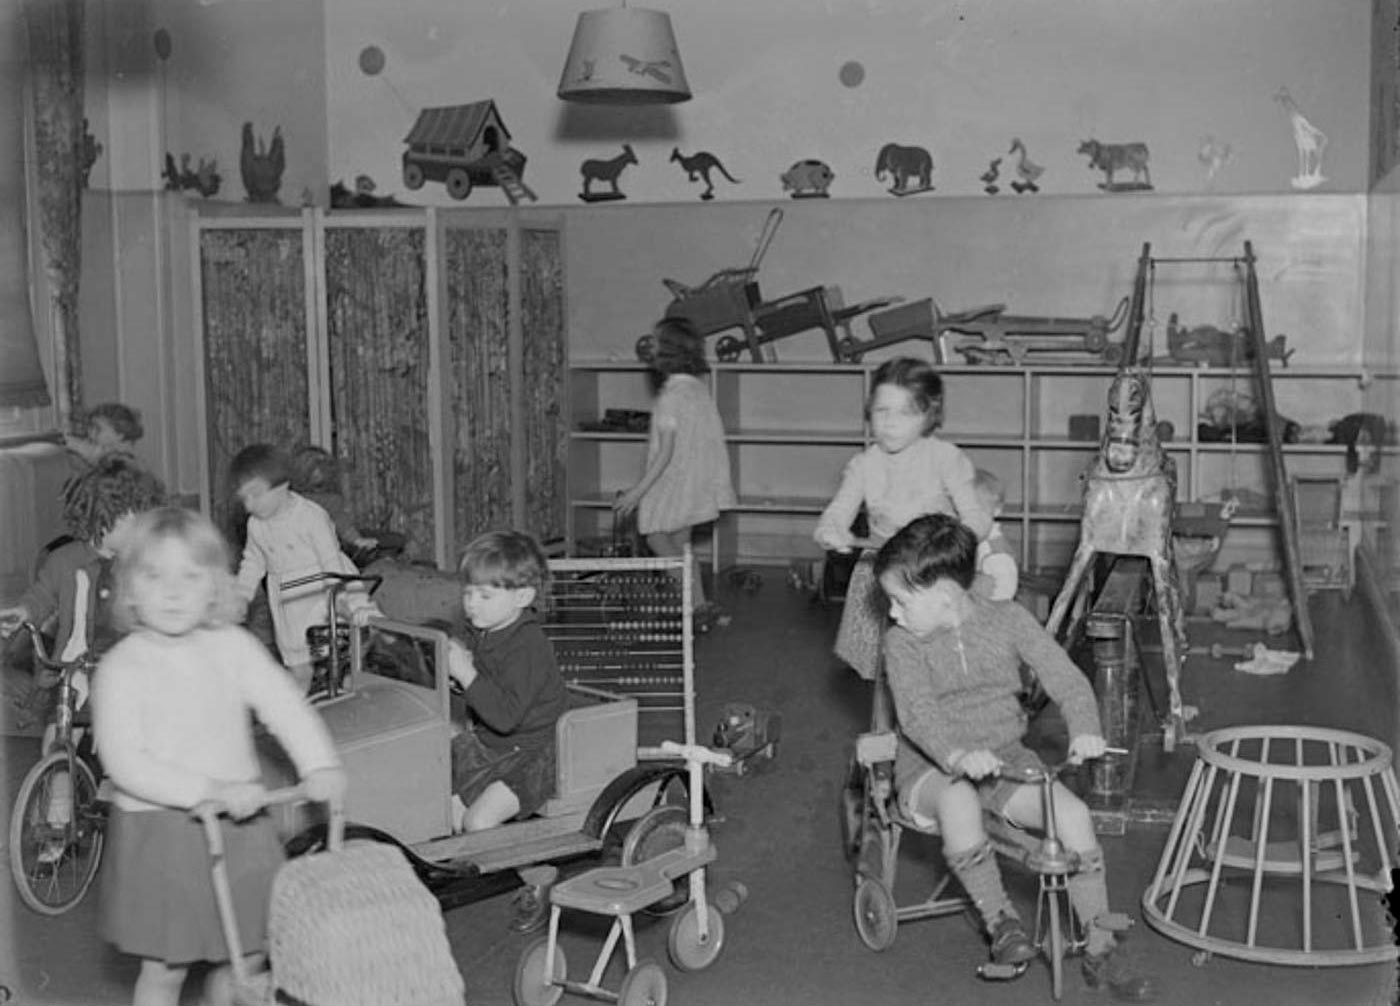 Eight small children in a room filled with toys. A girl in the foreground pushes a toy pram and several children ride trikes. Another girl sits in a toy car. The room includes an abacus, rocking horse and swing, with other toys stacked on shelves behind. - click to view larger image